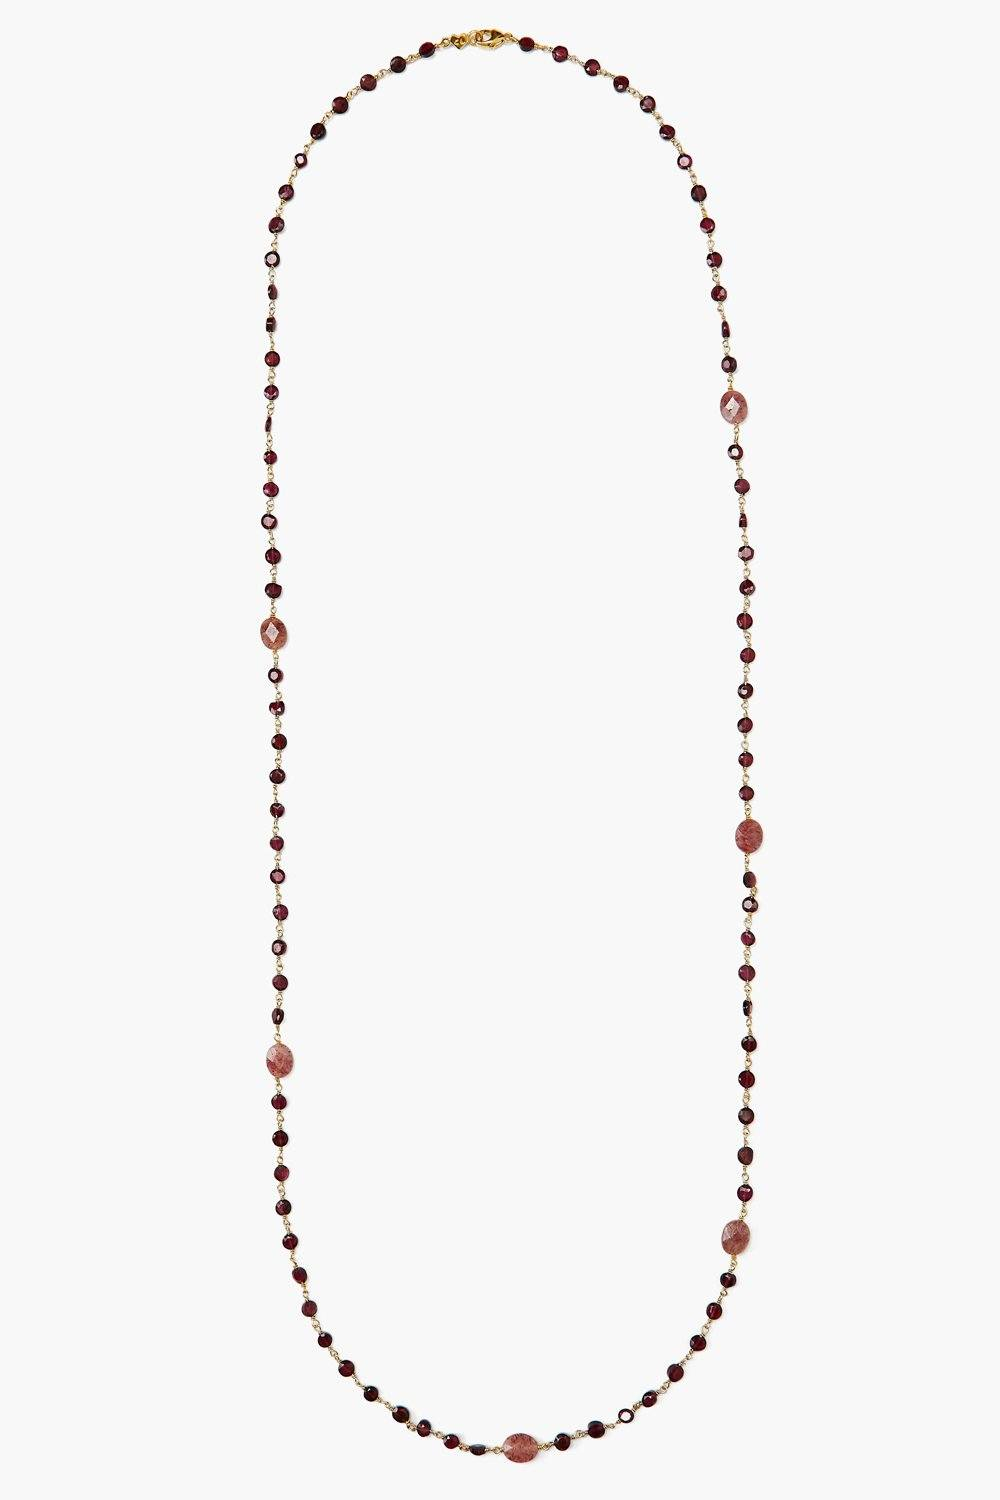 Garnet and Muscovite Necklace